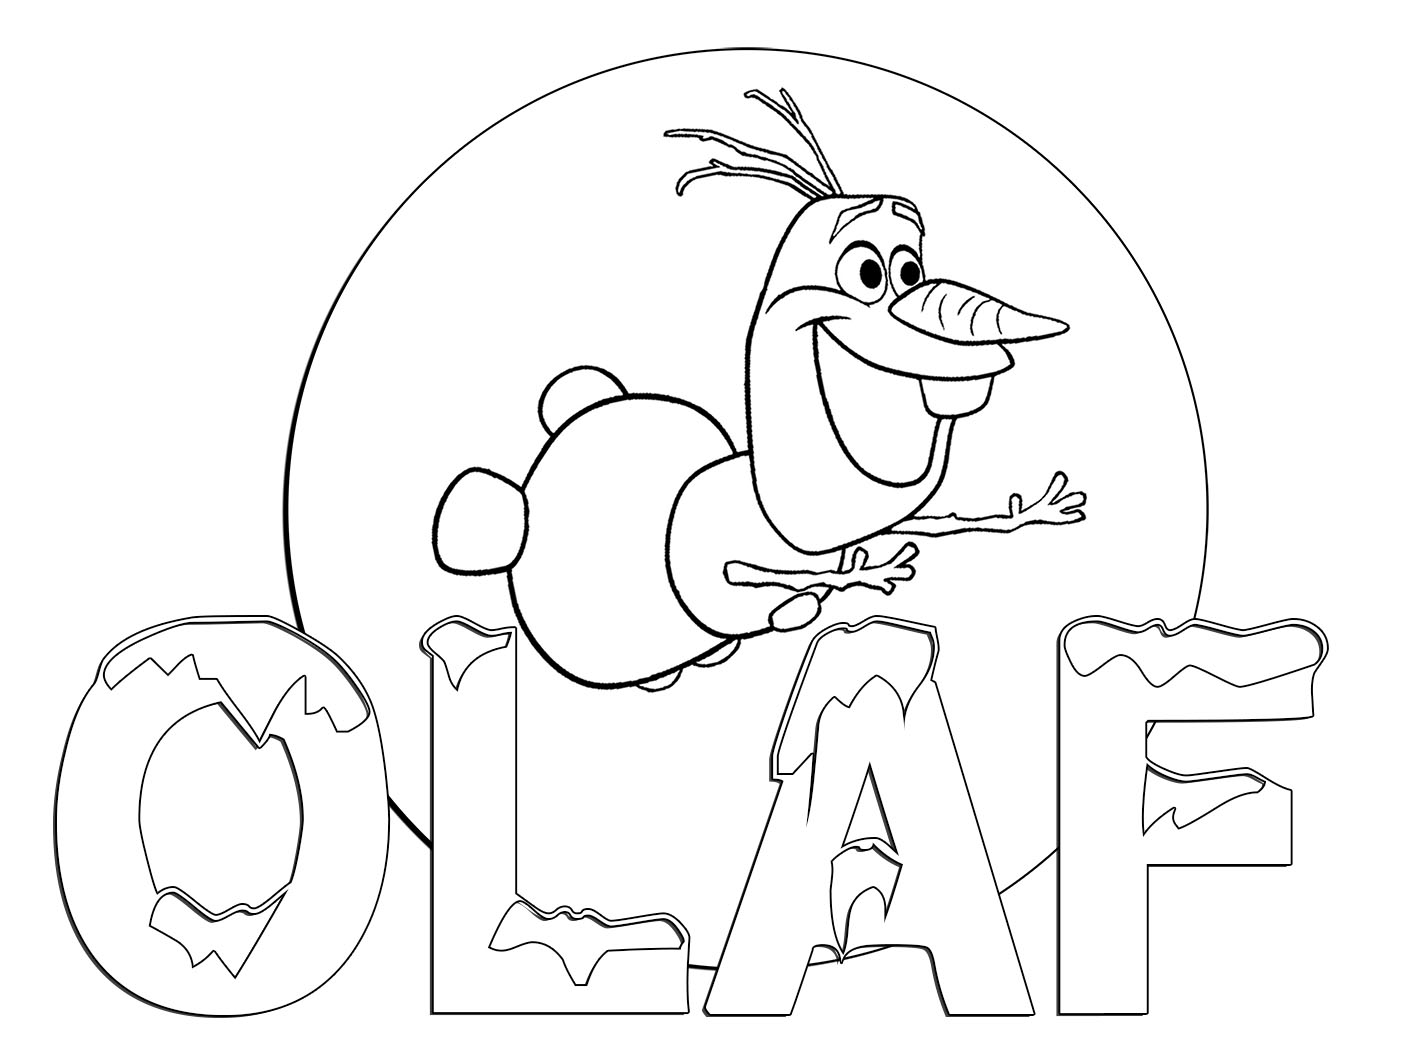 1414x1060 Olaf Frozen Free Coloring Page Disney, Frozen, Kids Coloring Pages